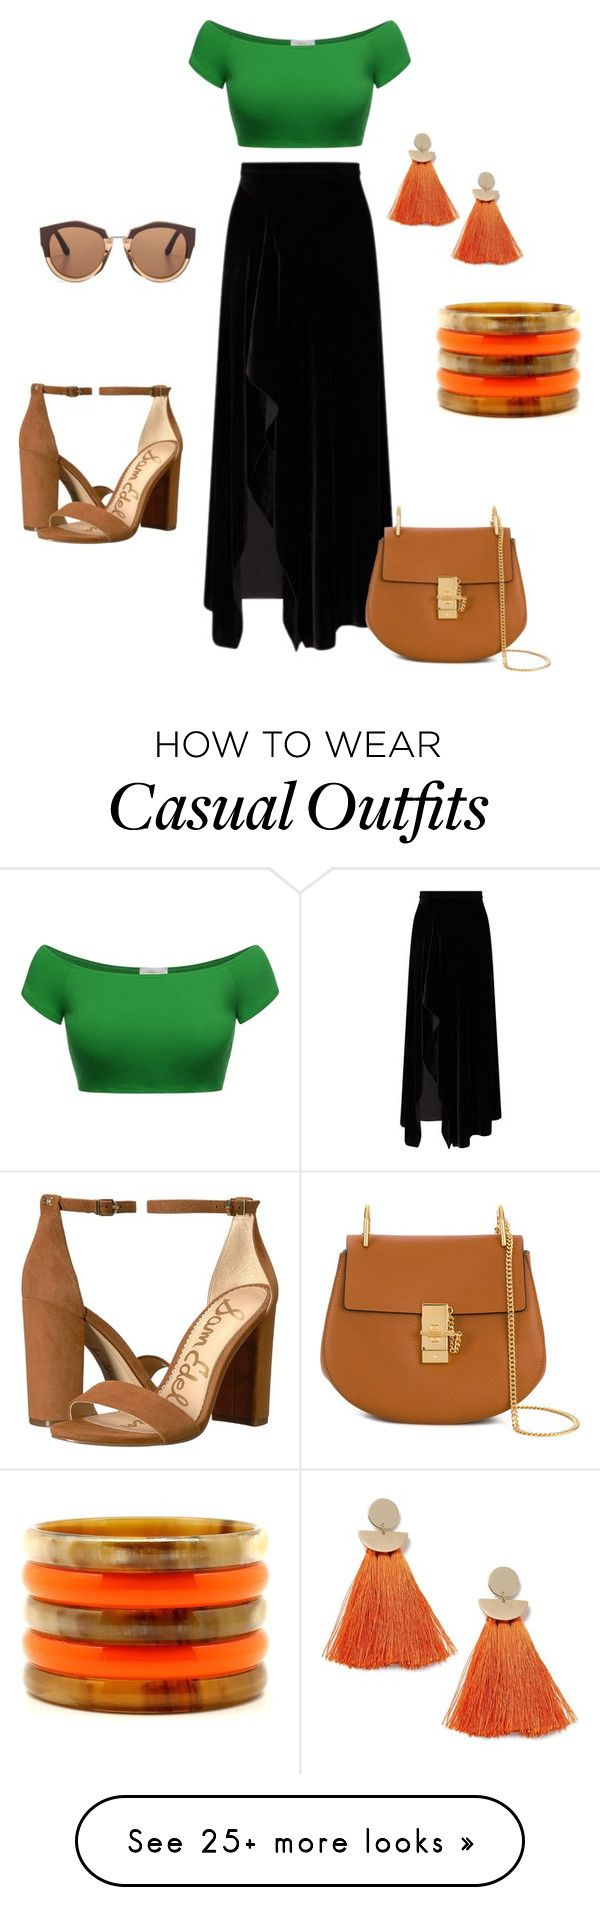 """""""Casual date"""" by ranjali on Polyvore featuring Roland Mouret, Chloé, Miss Selfridge, Sam Edelman and Marni"""